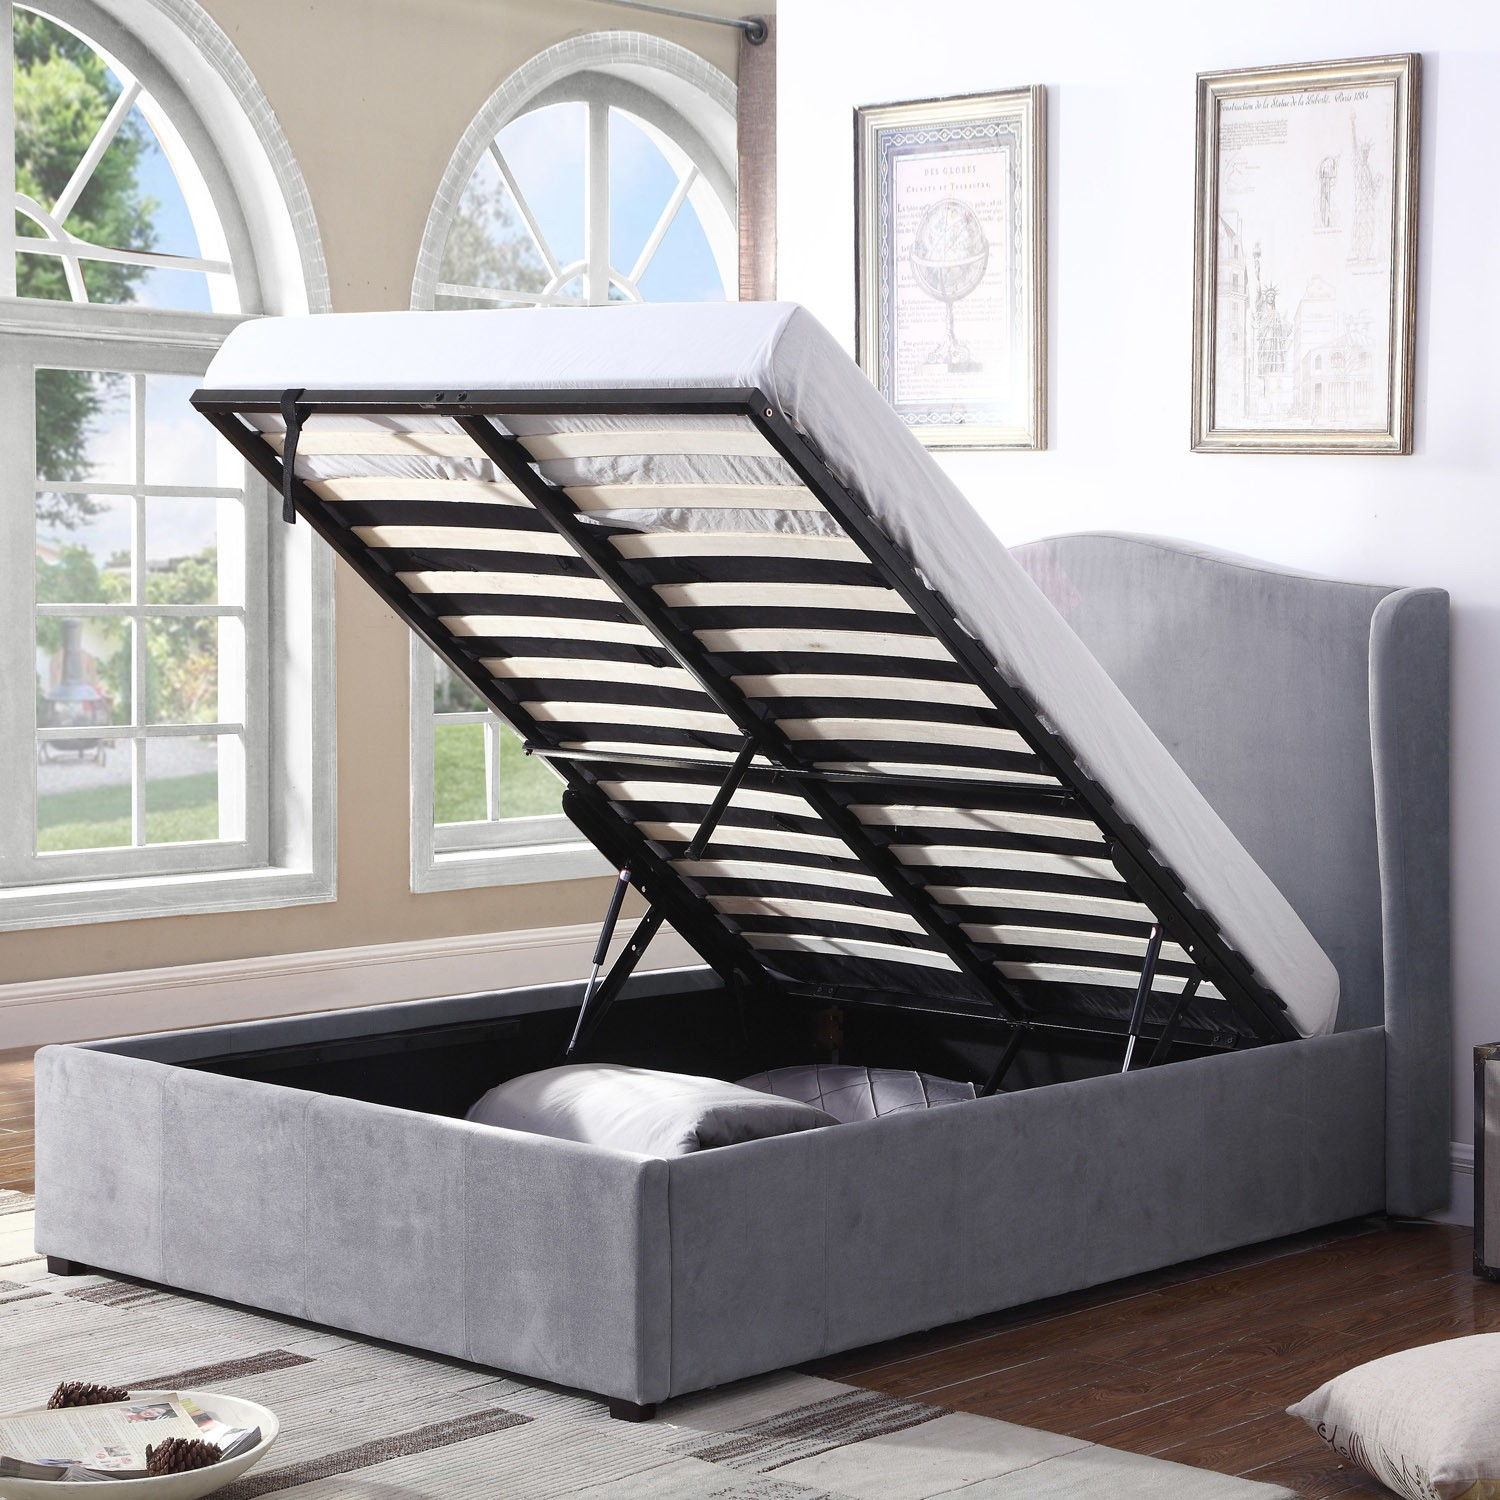 Super Grade A1 Safina Wing Back Double Ottoman Bed In Grey Velvet Theyellowbook Wood Chair Design Ideas Theyellowbookinfo